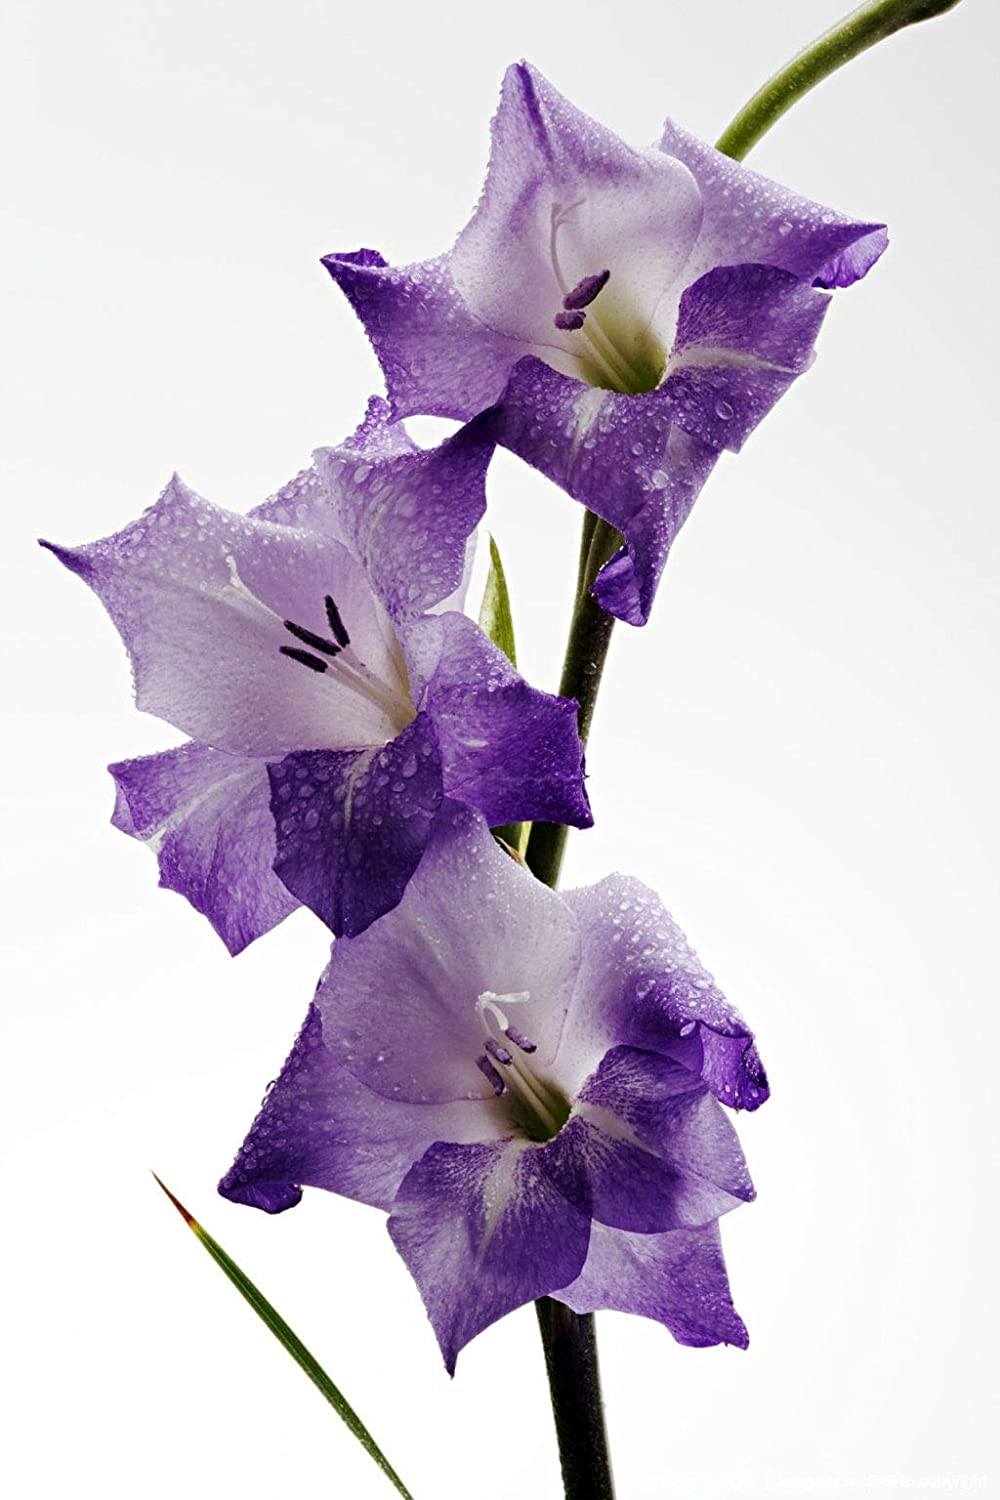 10 x Charming Gladioli 'Nori' (Corm) (Purple Gladiolus to Plant at Home) Free UK Postage Cambridge Farmers Outlet